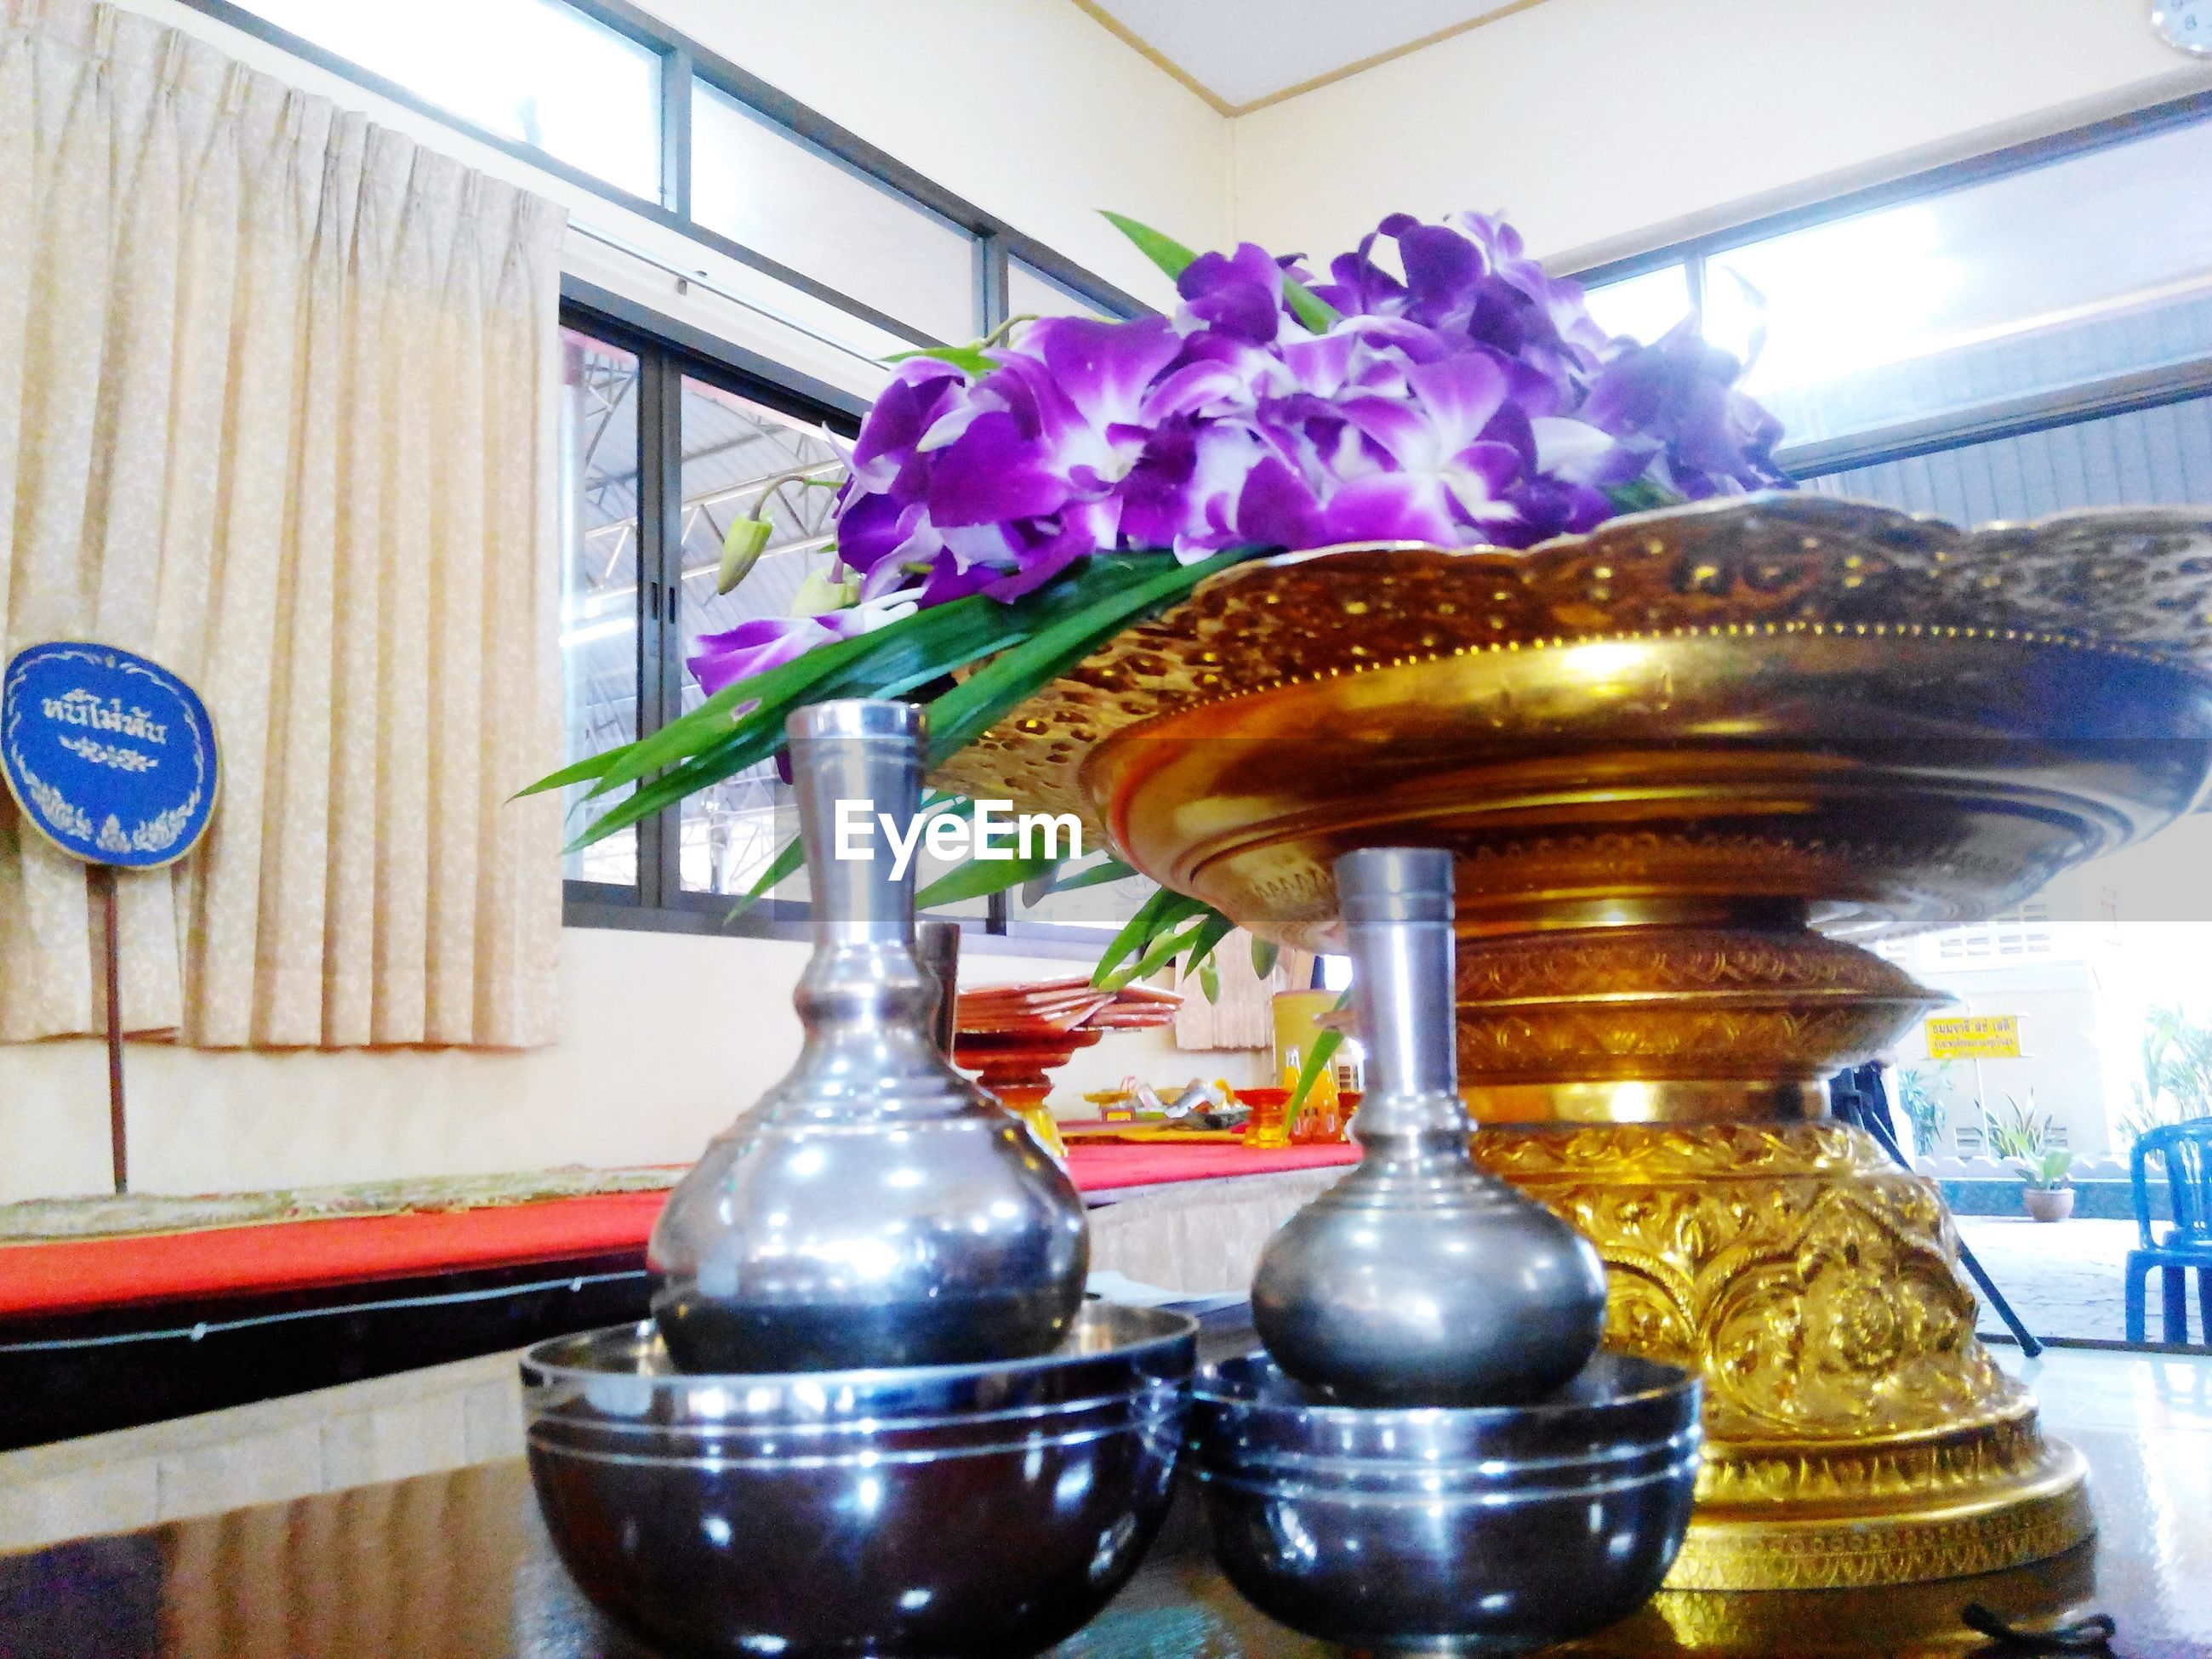 indoors, flower, decoration, art and craft, vase, art, architecture, built structure, creativity, low angle view, potted plant, ornate, no people, flower pot, freshness, glass - material, day, railing, table, religion